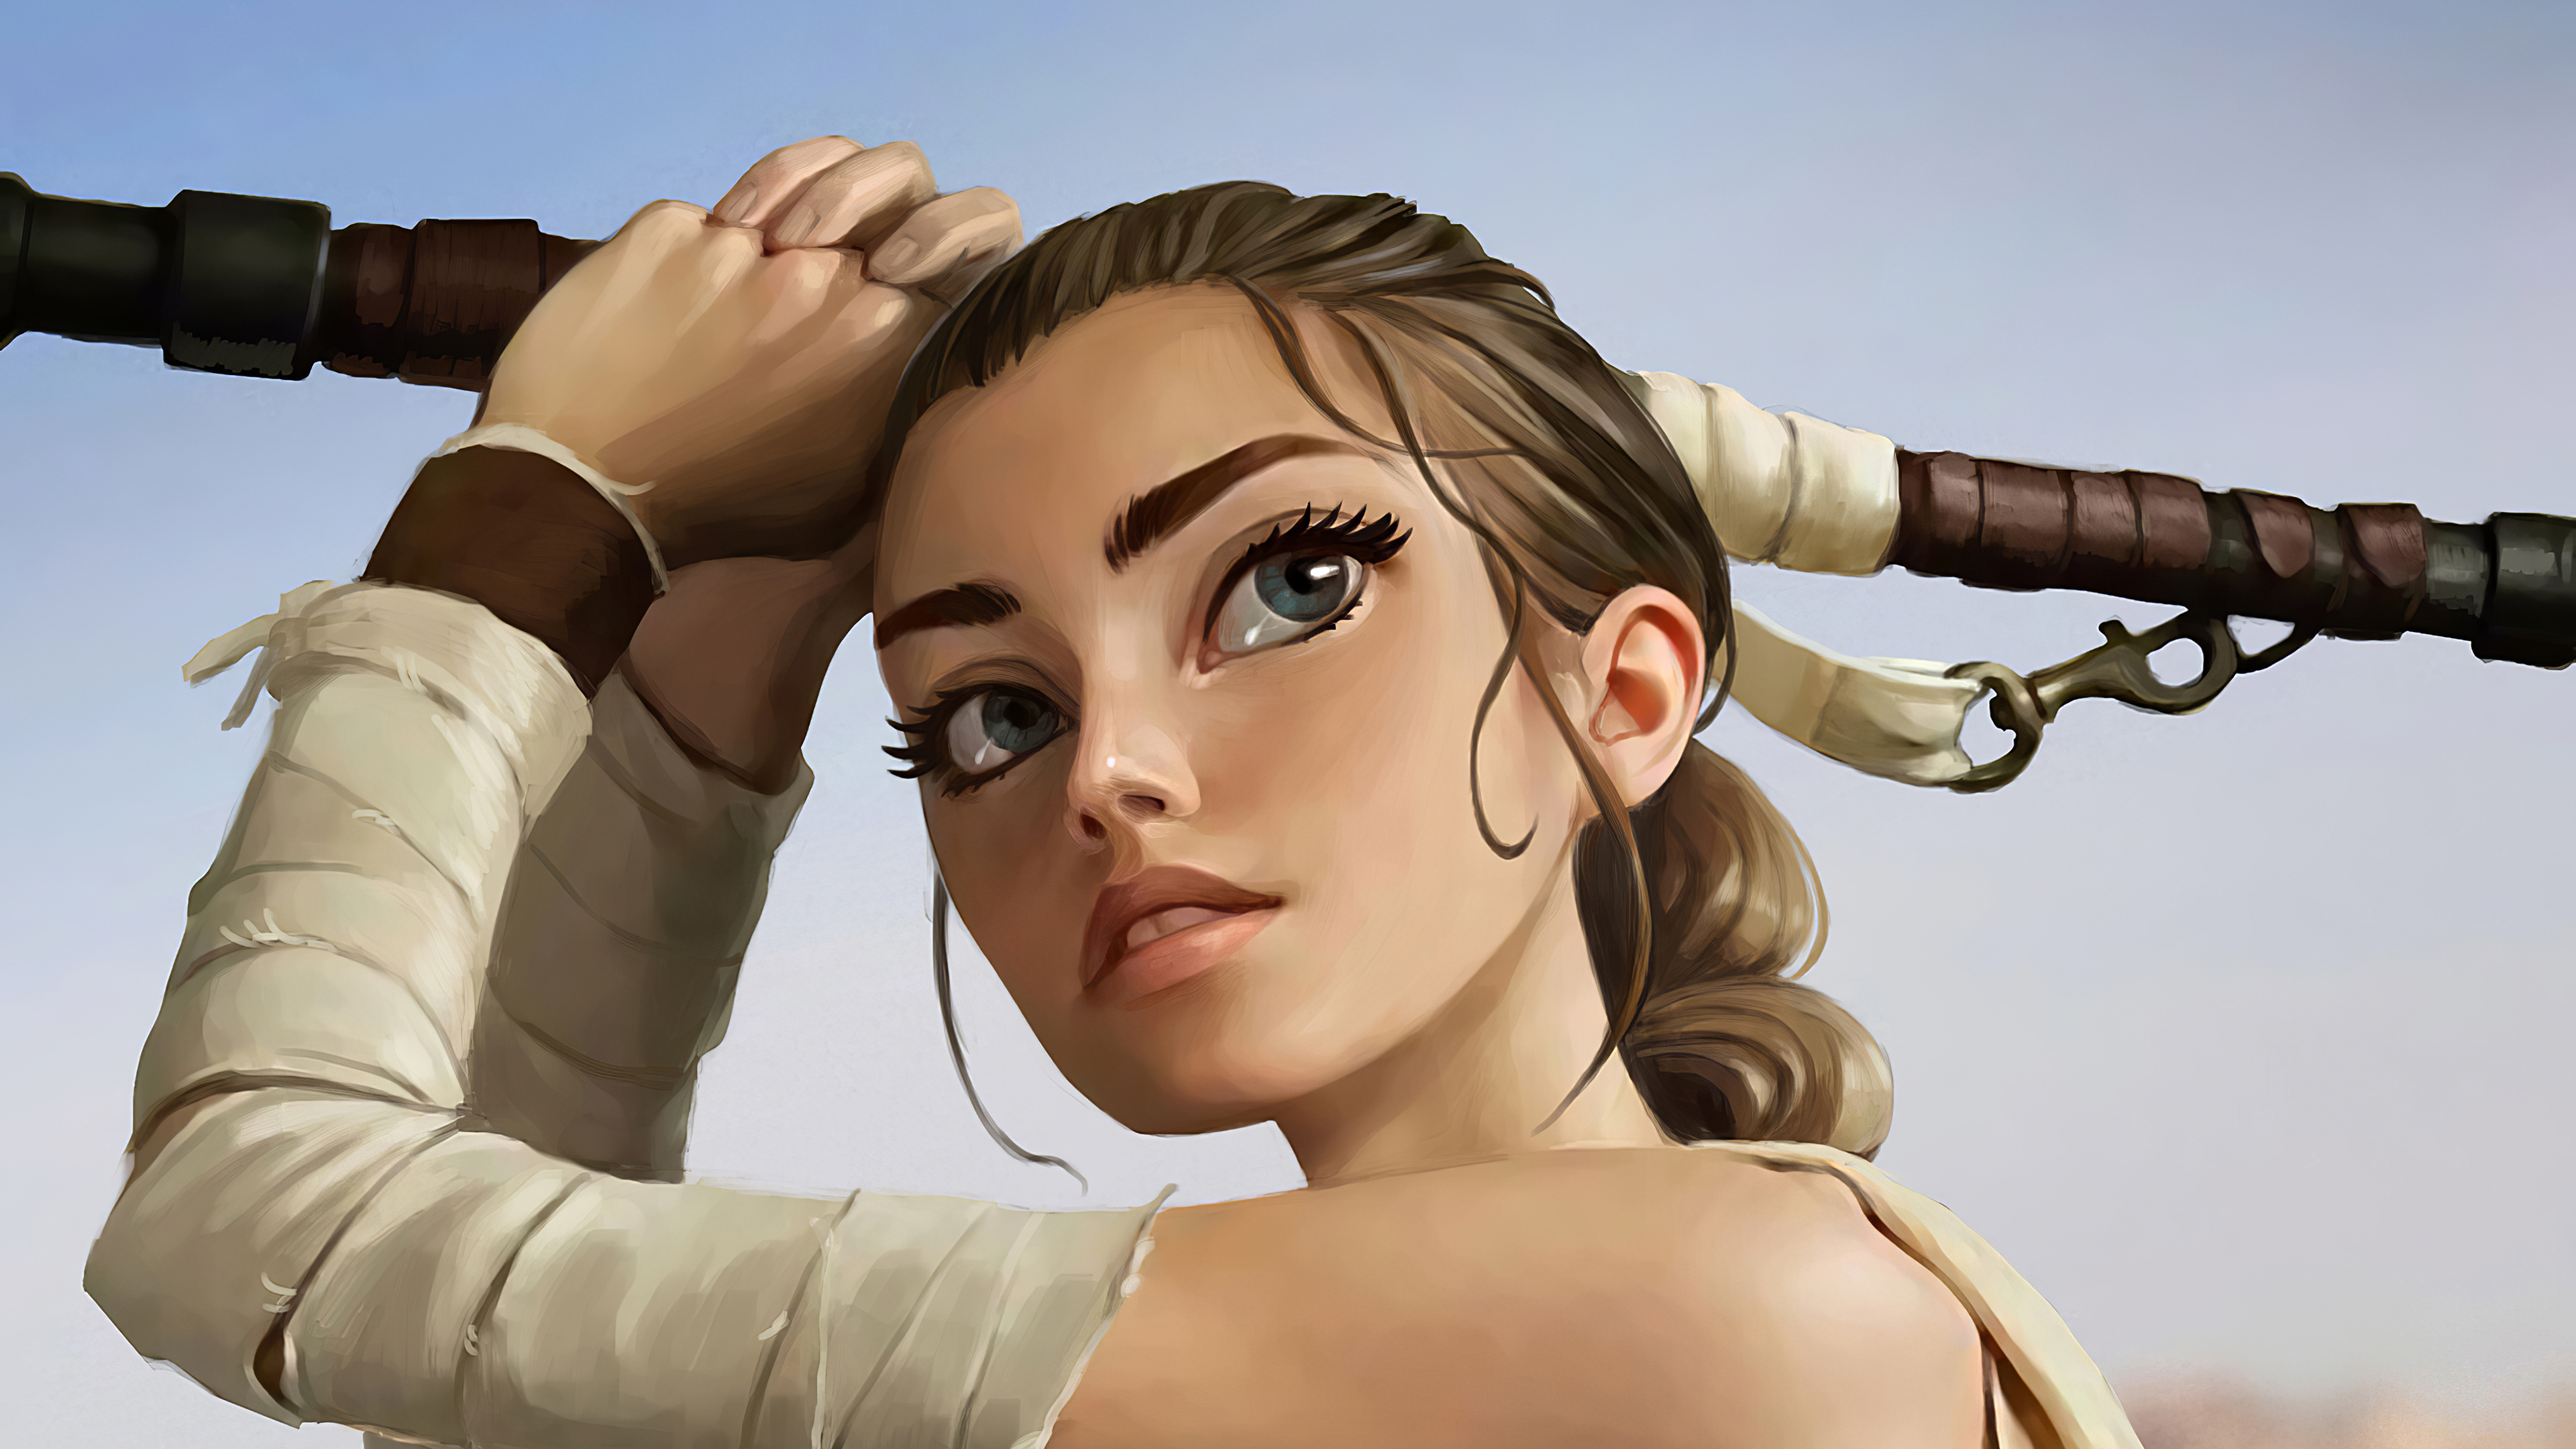 1280x720 Rey Star Wars Digital Art 4k 720p Hd 4k Wallpapers Images Backgrounds Photos And Pictures